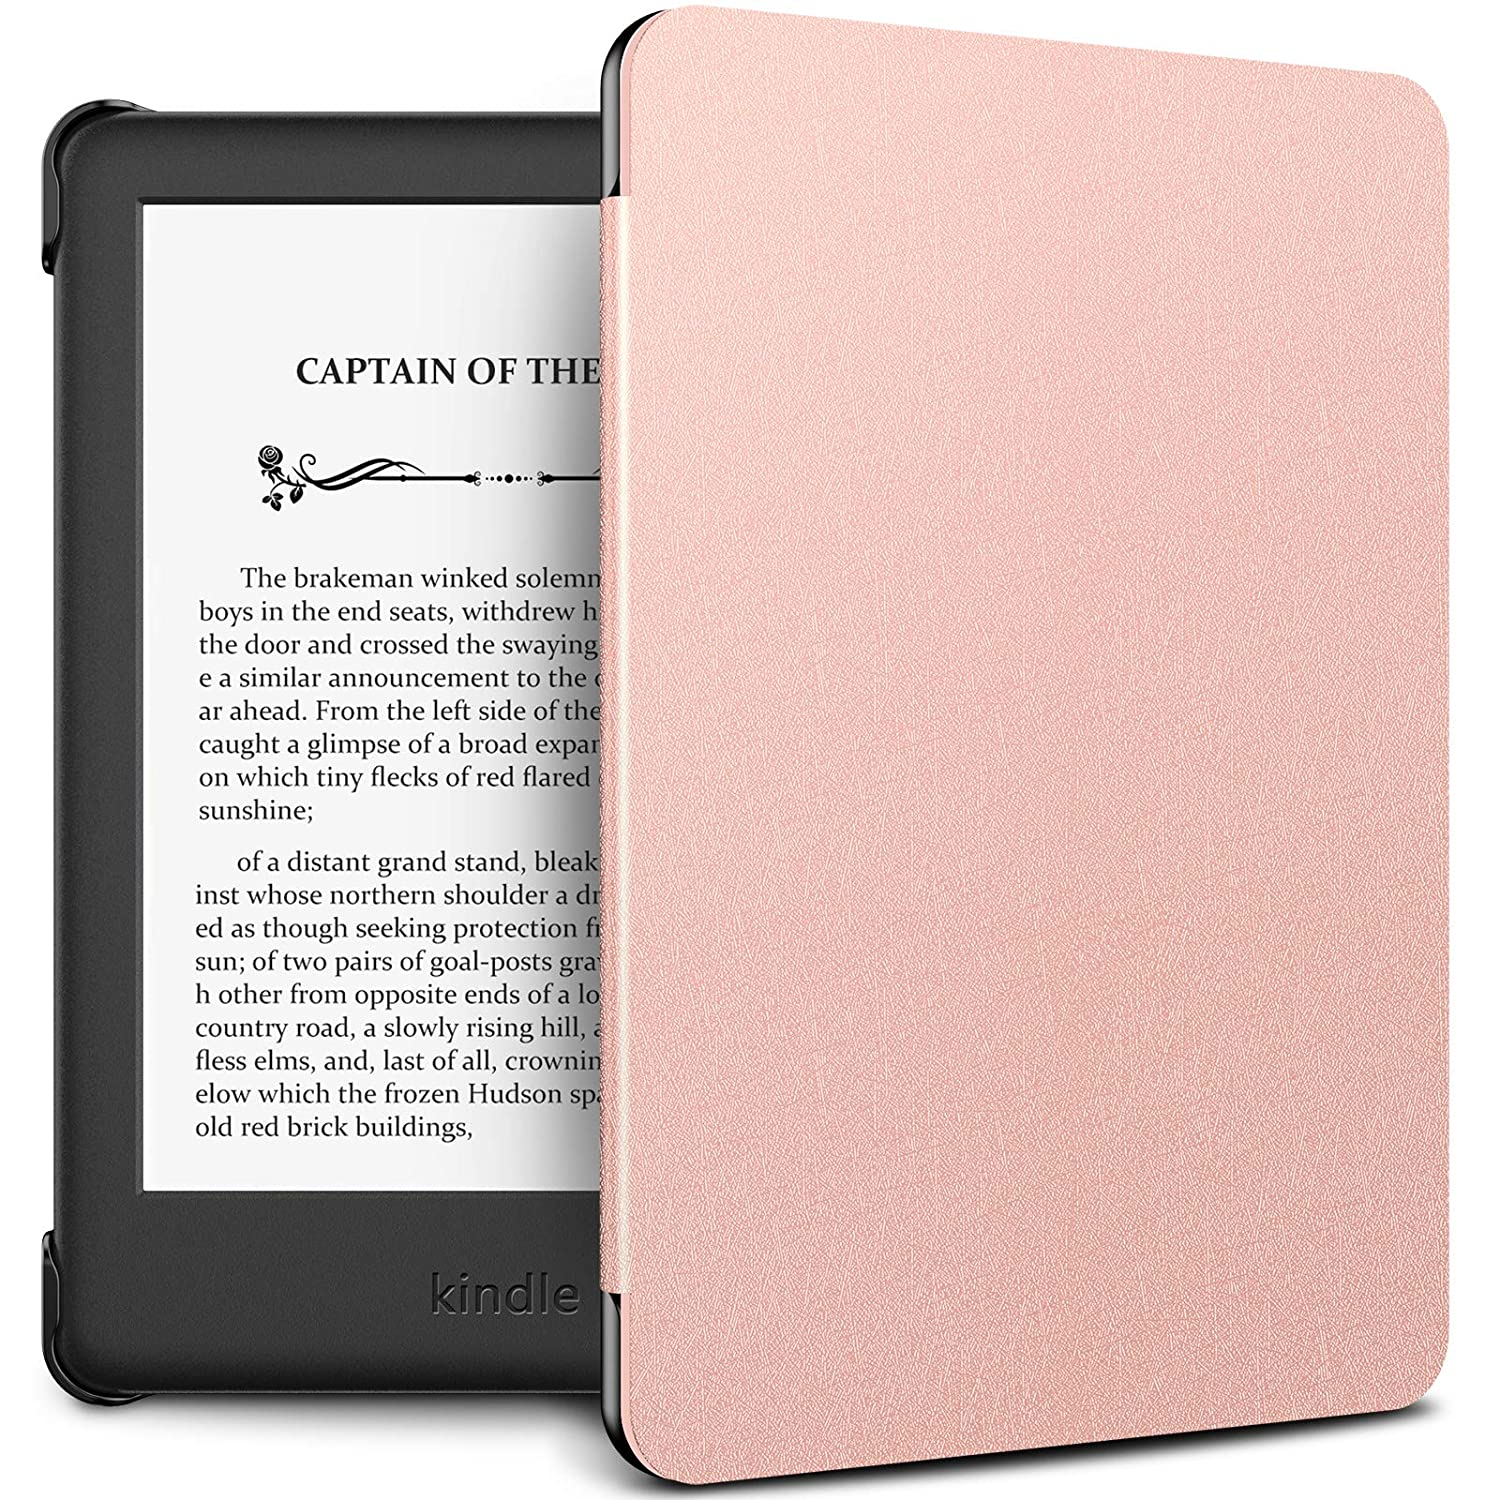 new concept 4a7f3 d3a4f INFILAND Kindle 10th Gen 2019 Case, Shell Case Cover Auto Wake/Sleep  Compatible with All-New Kindle 10th Generation 2019 Release Only, Rose-Gold